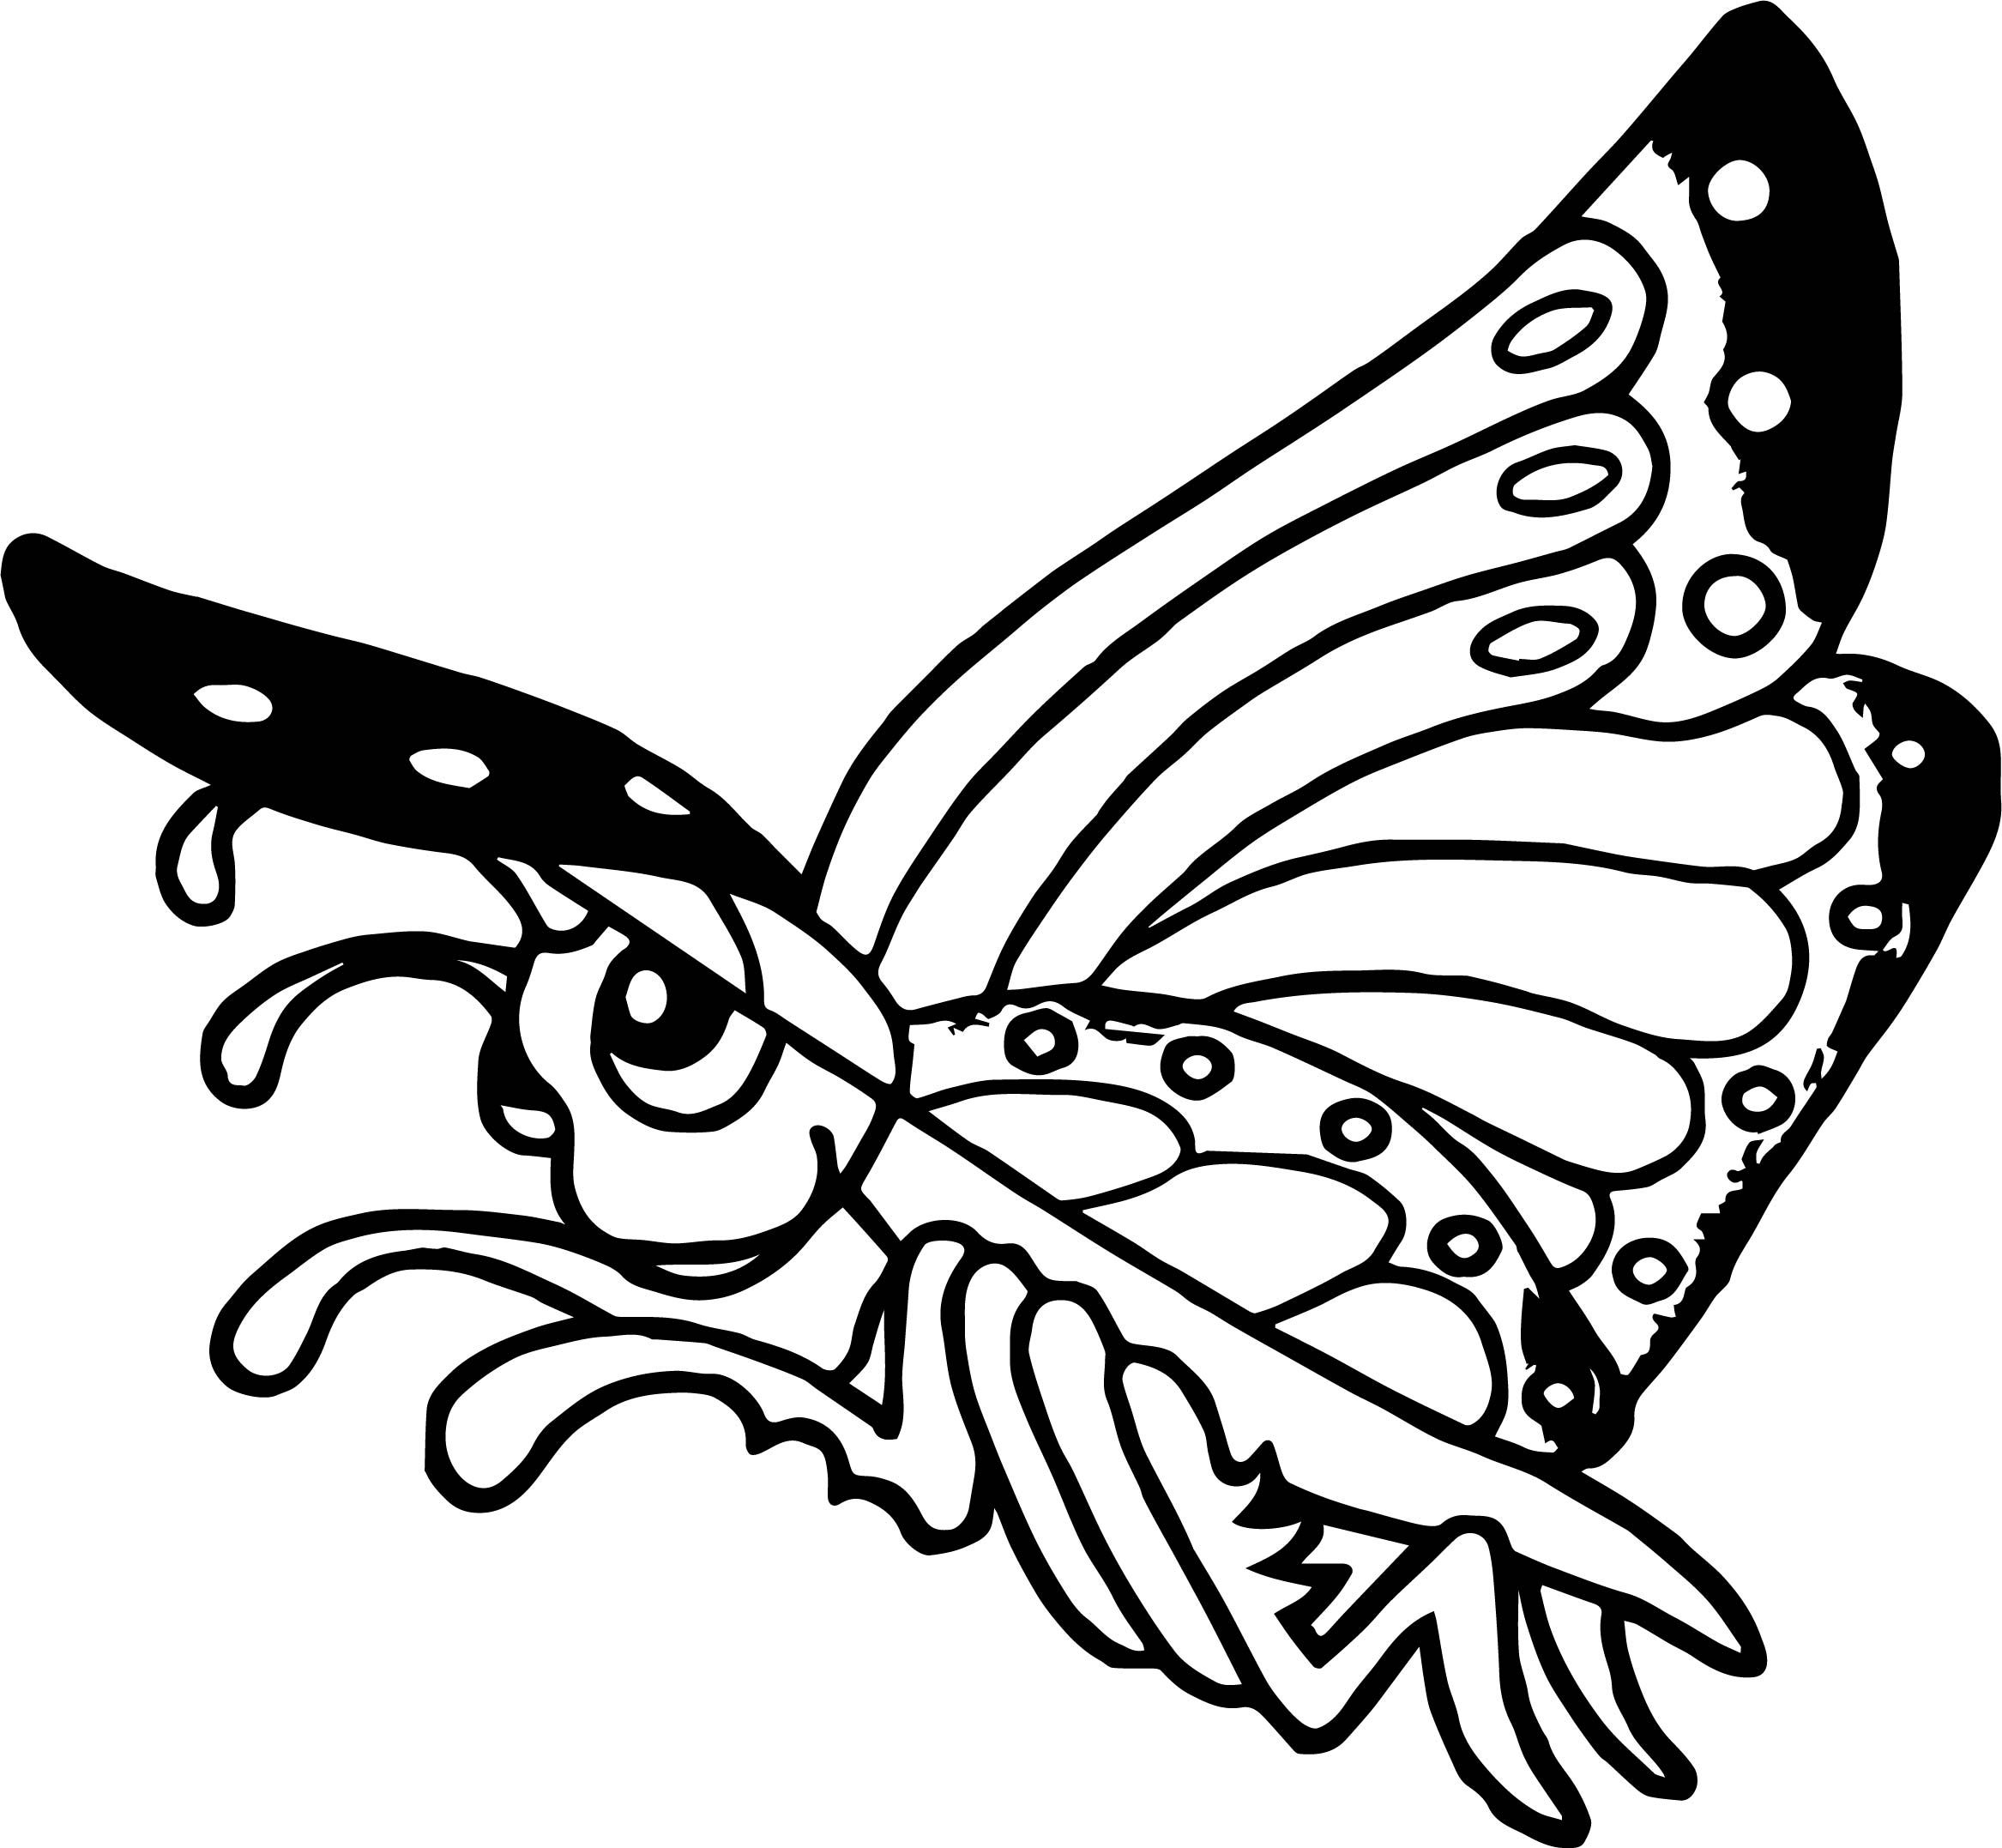 Cool Rainforest Butterfly Coloring Page Butterfly Coloring Page Rainforest Butterfly Coloring Pages [ 2154 x 2334 Pixel ]